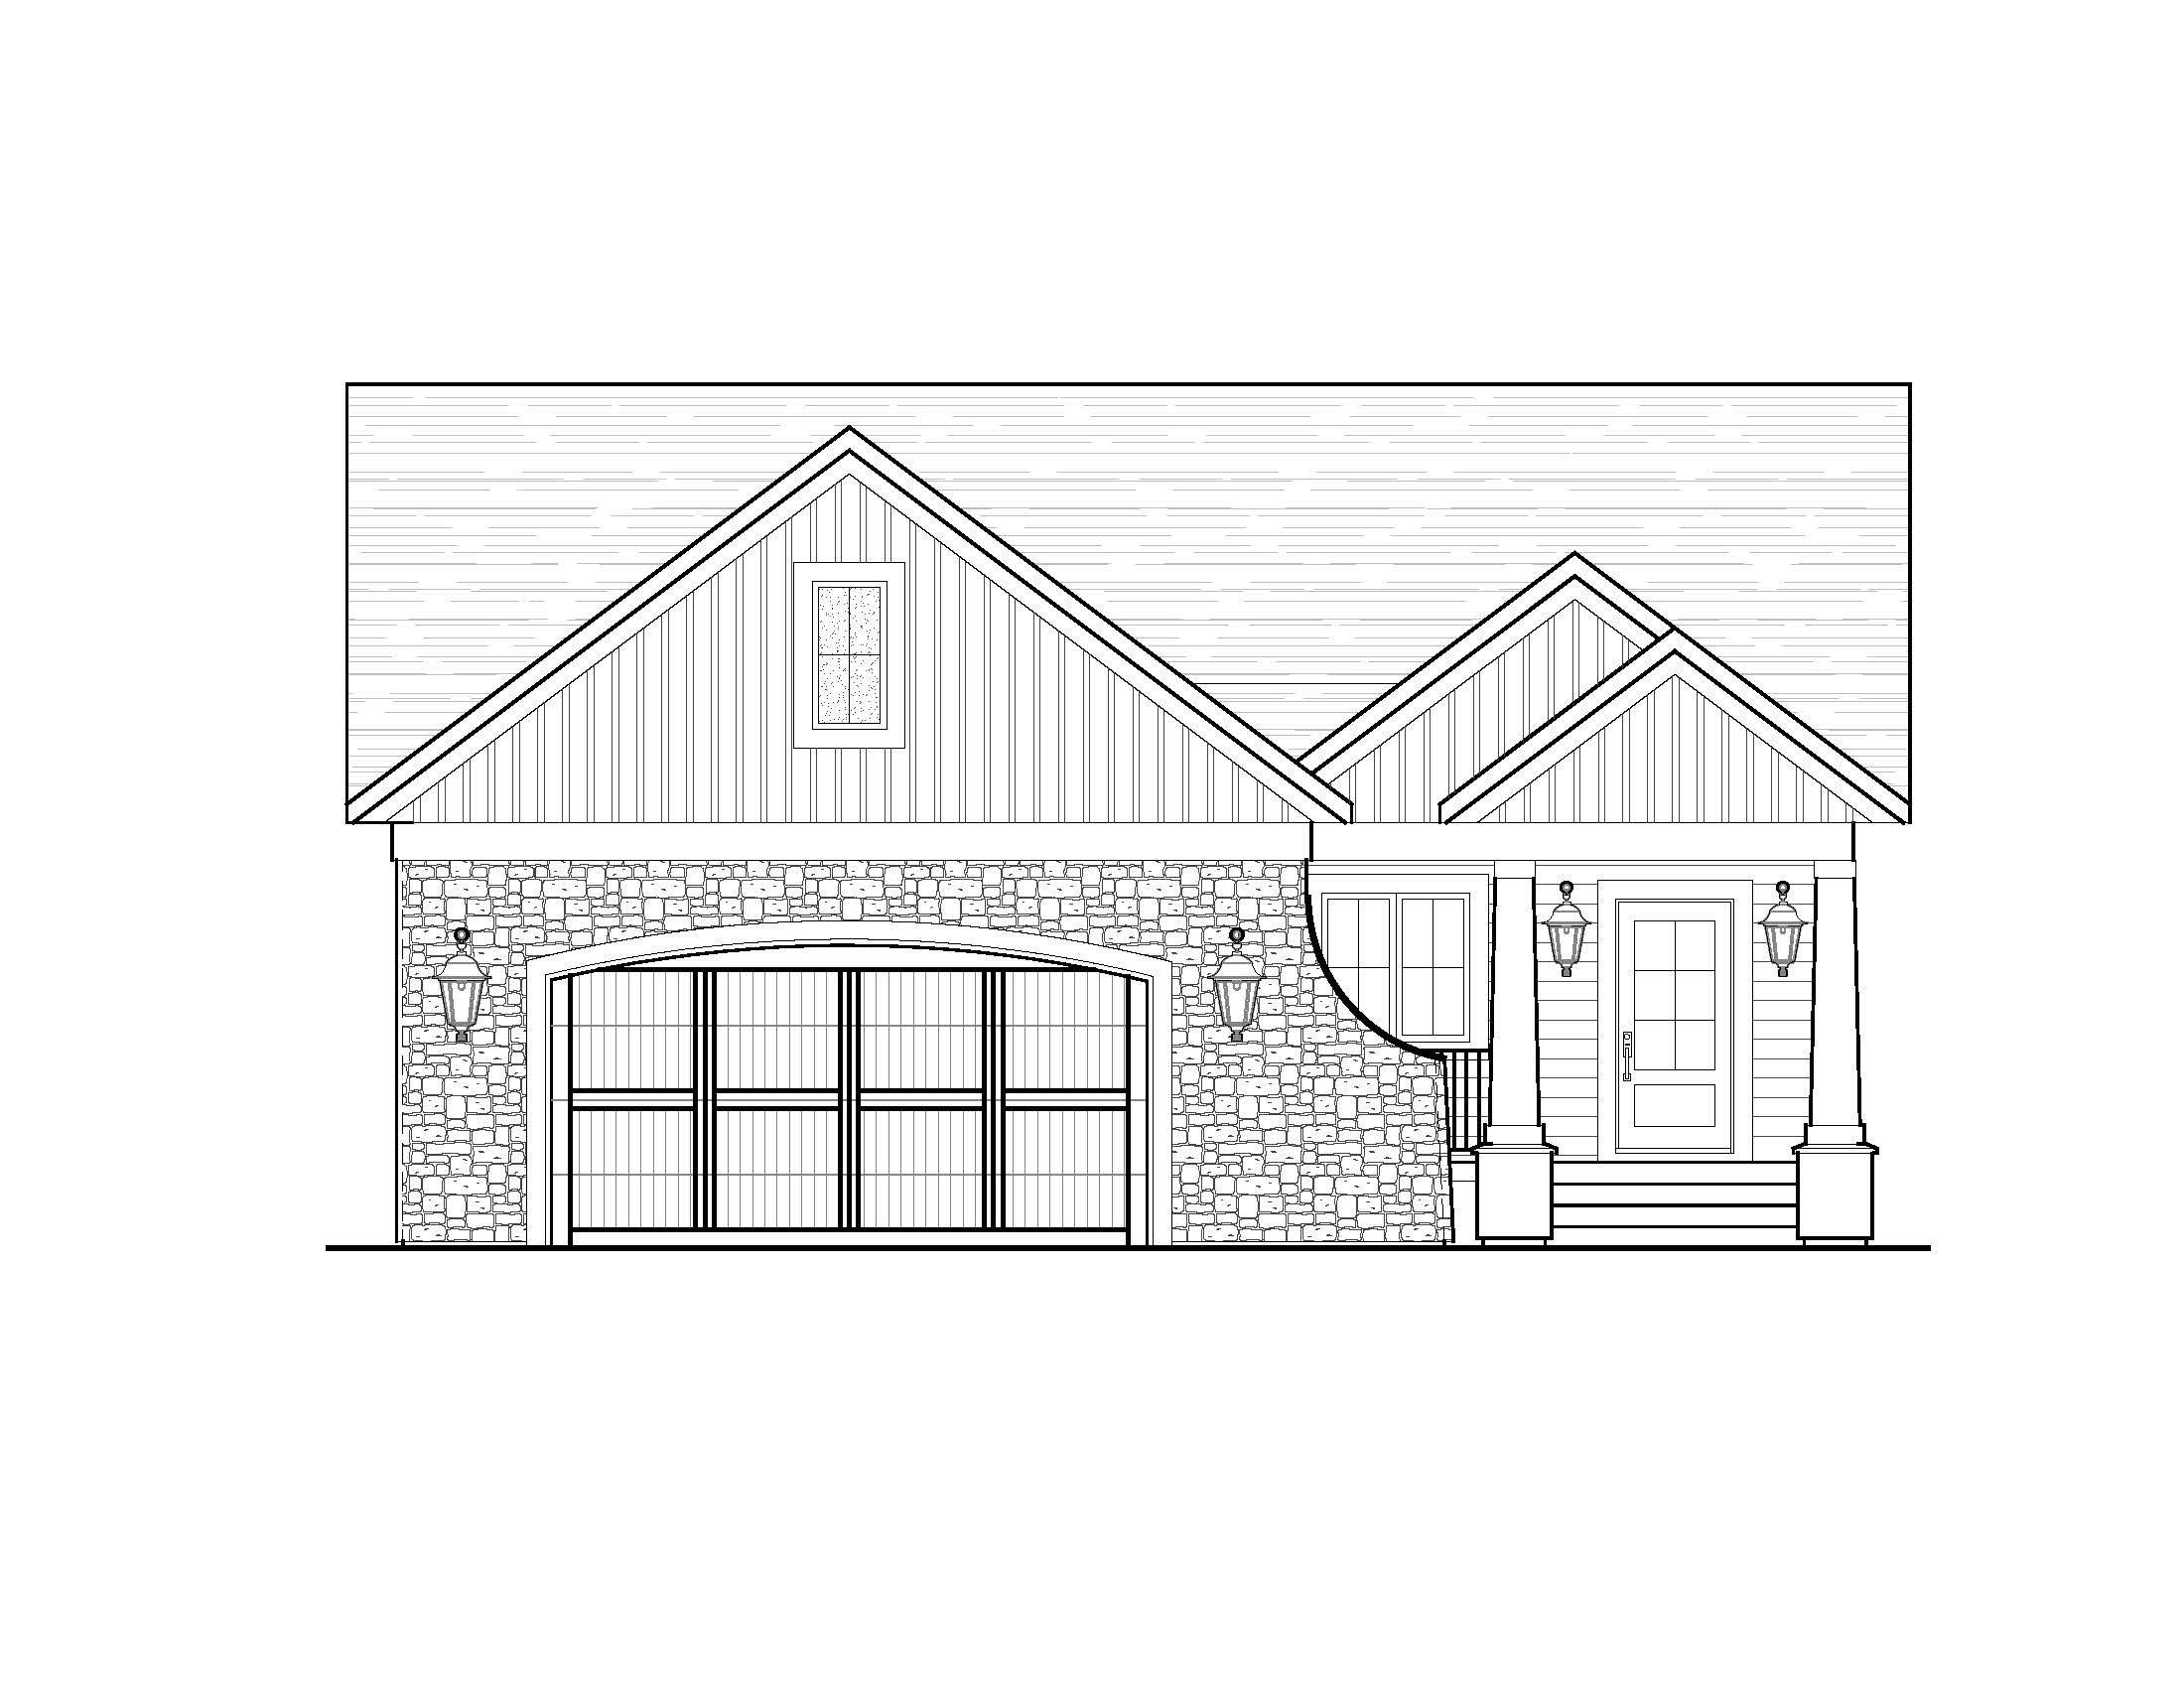 Coombe - Bungalow | 1,665 sf